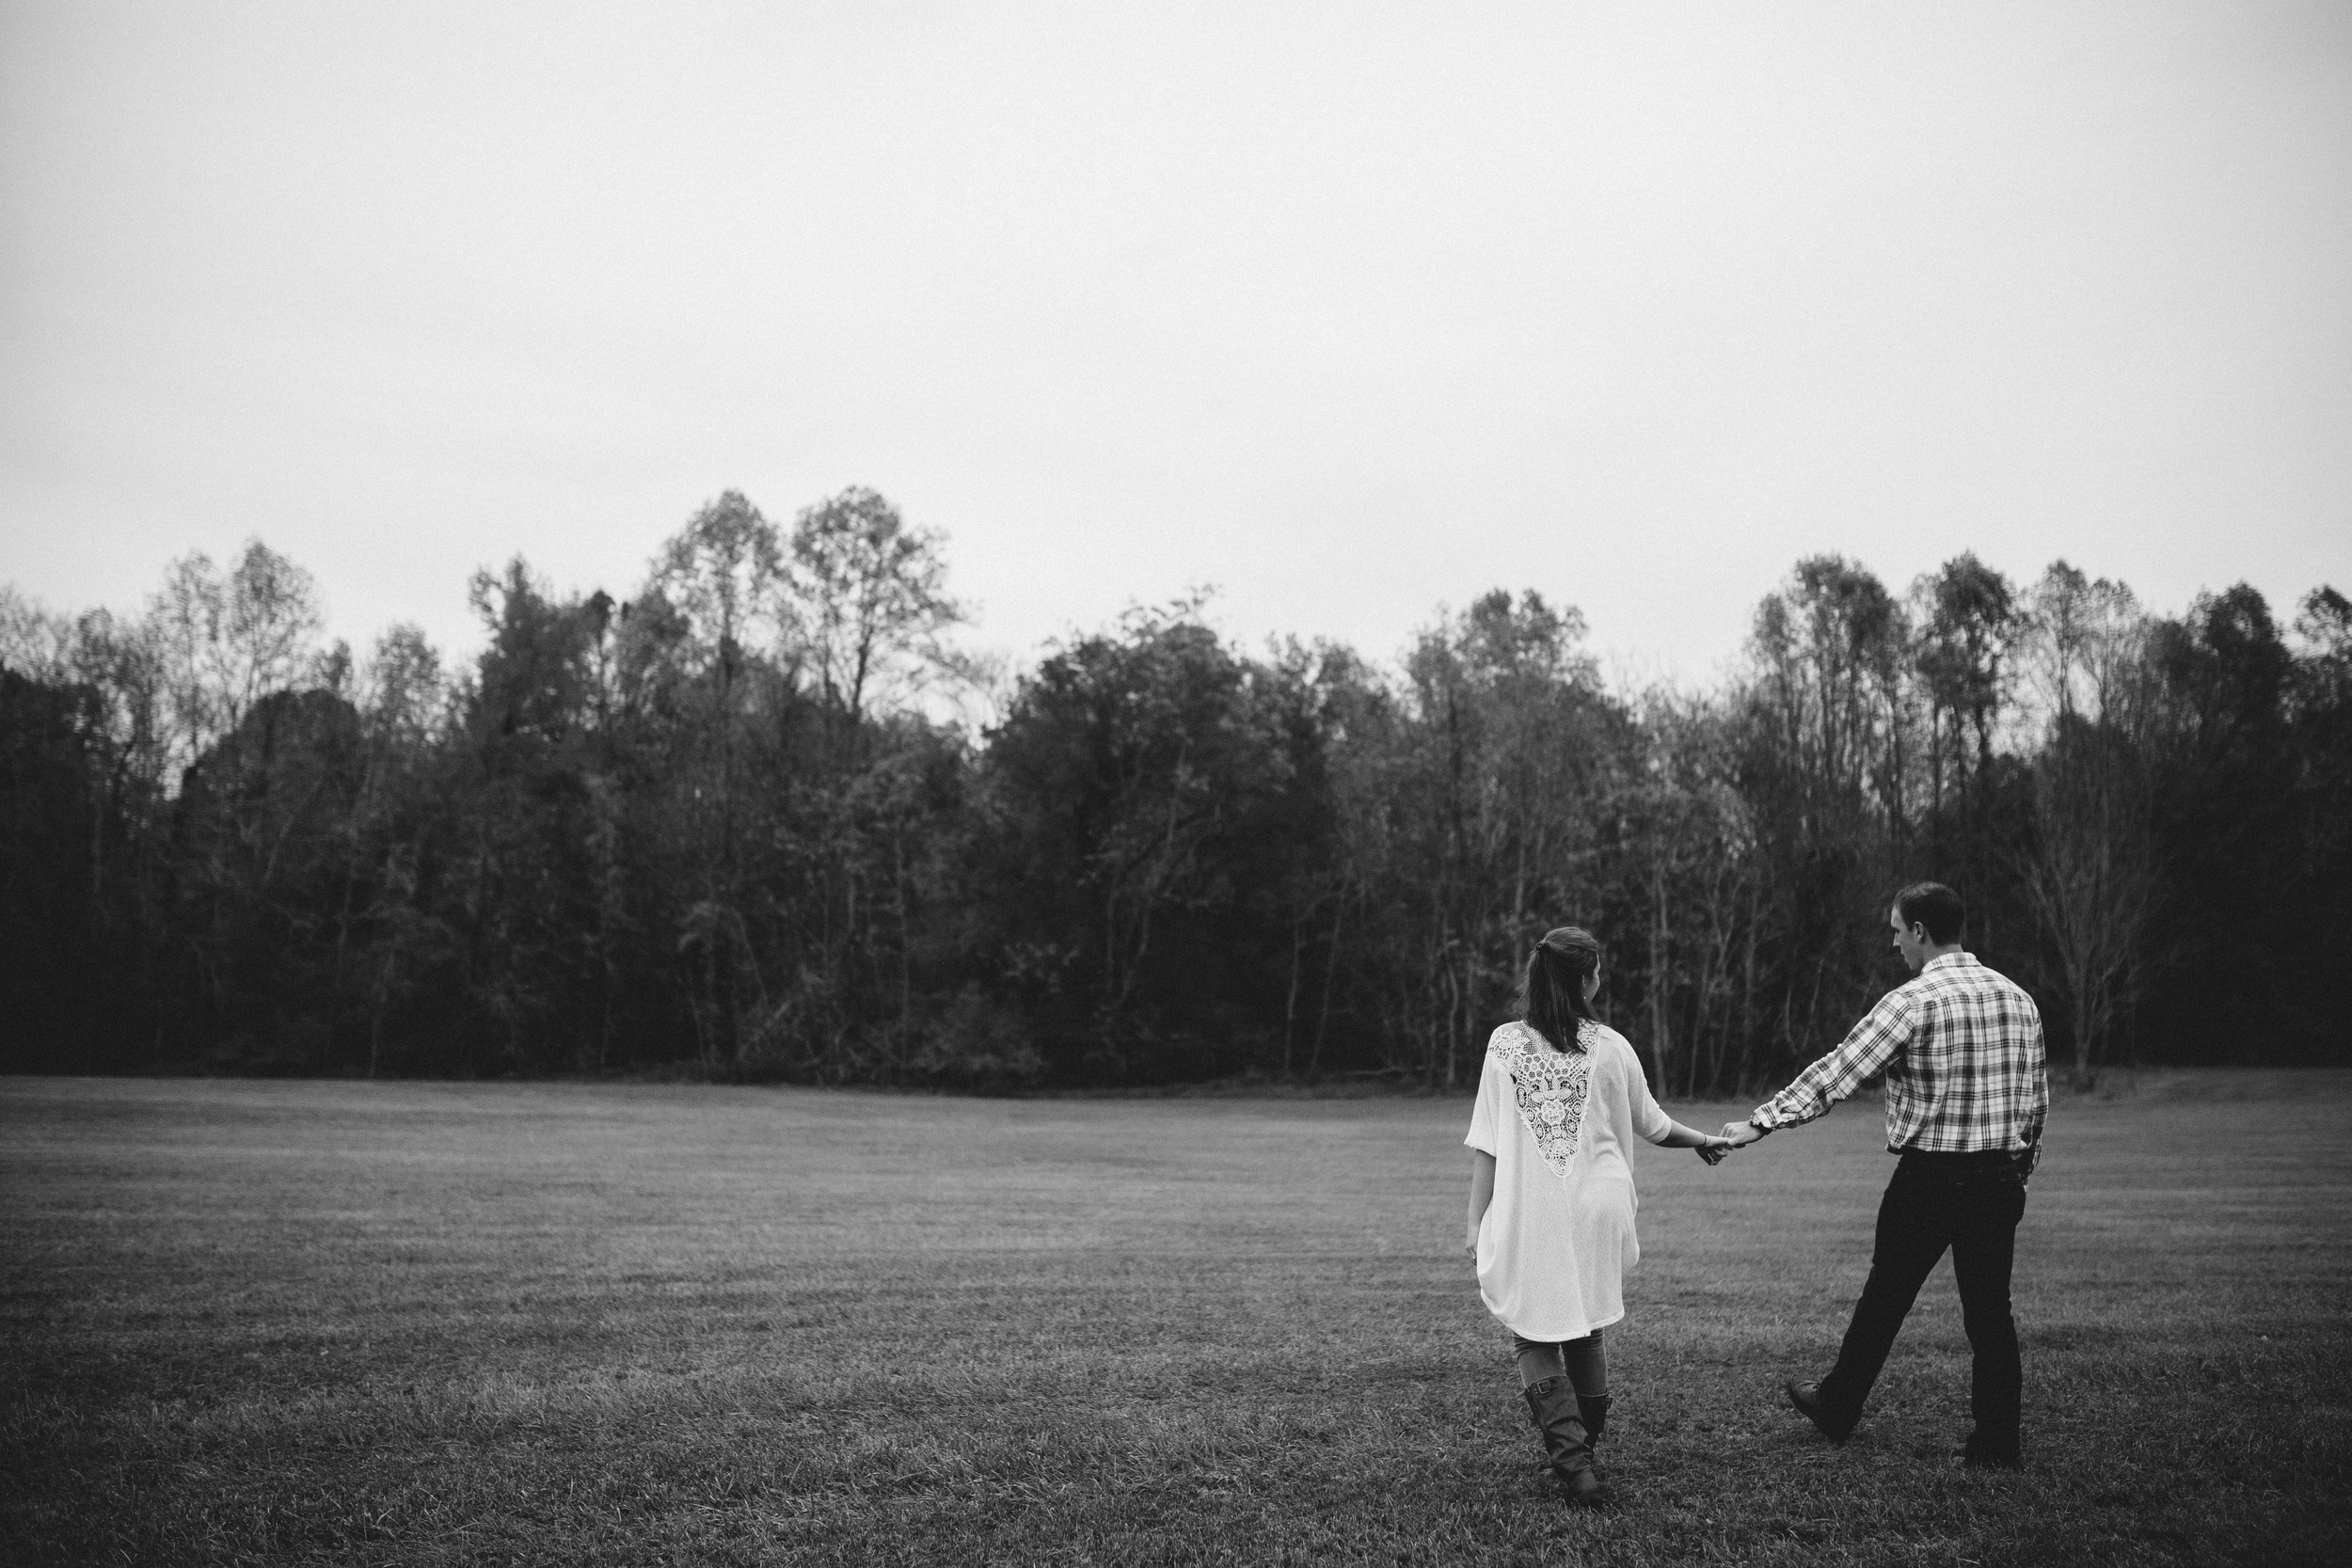 mary-and-doug-engagement-8265.jpg